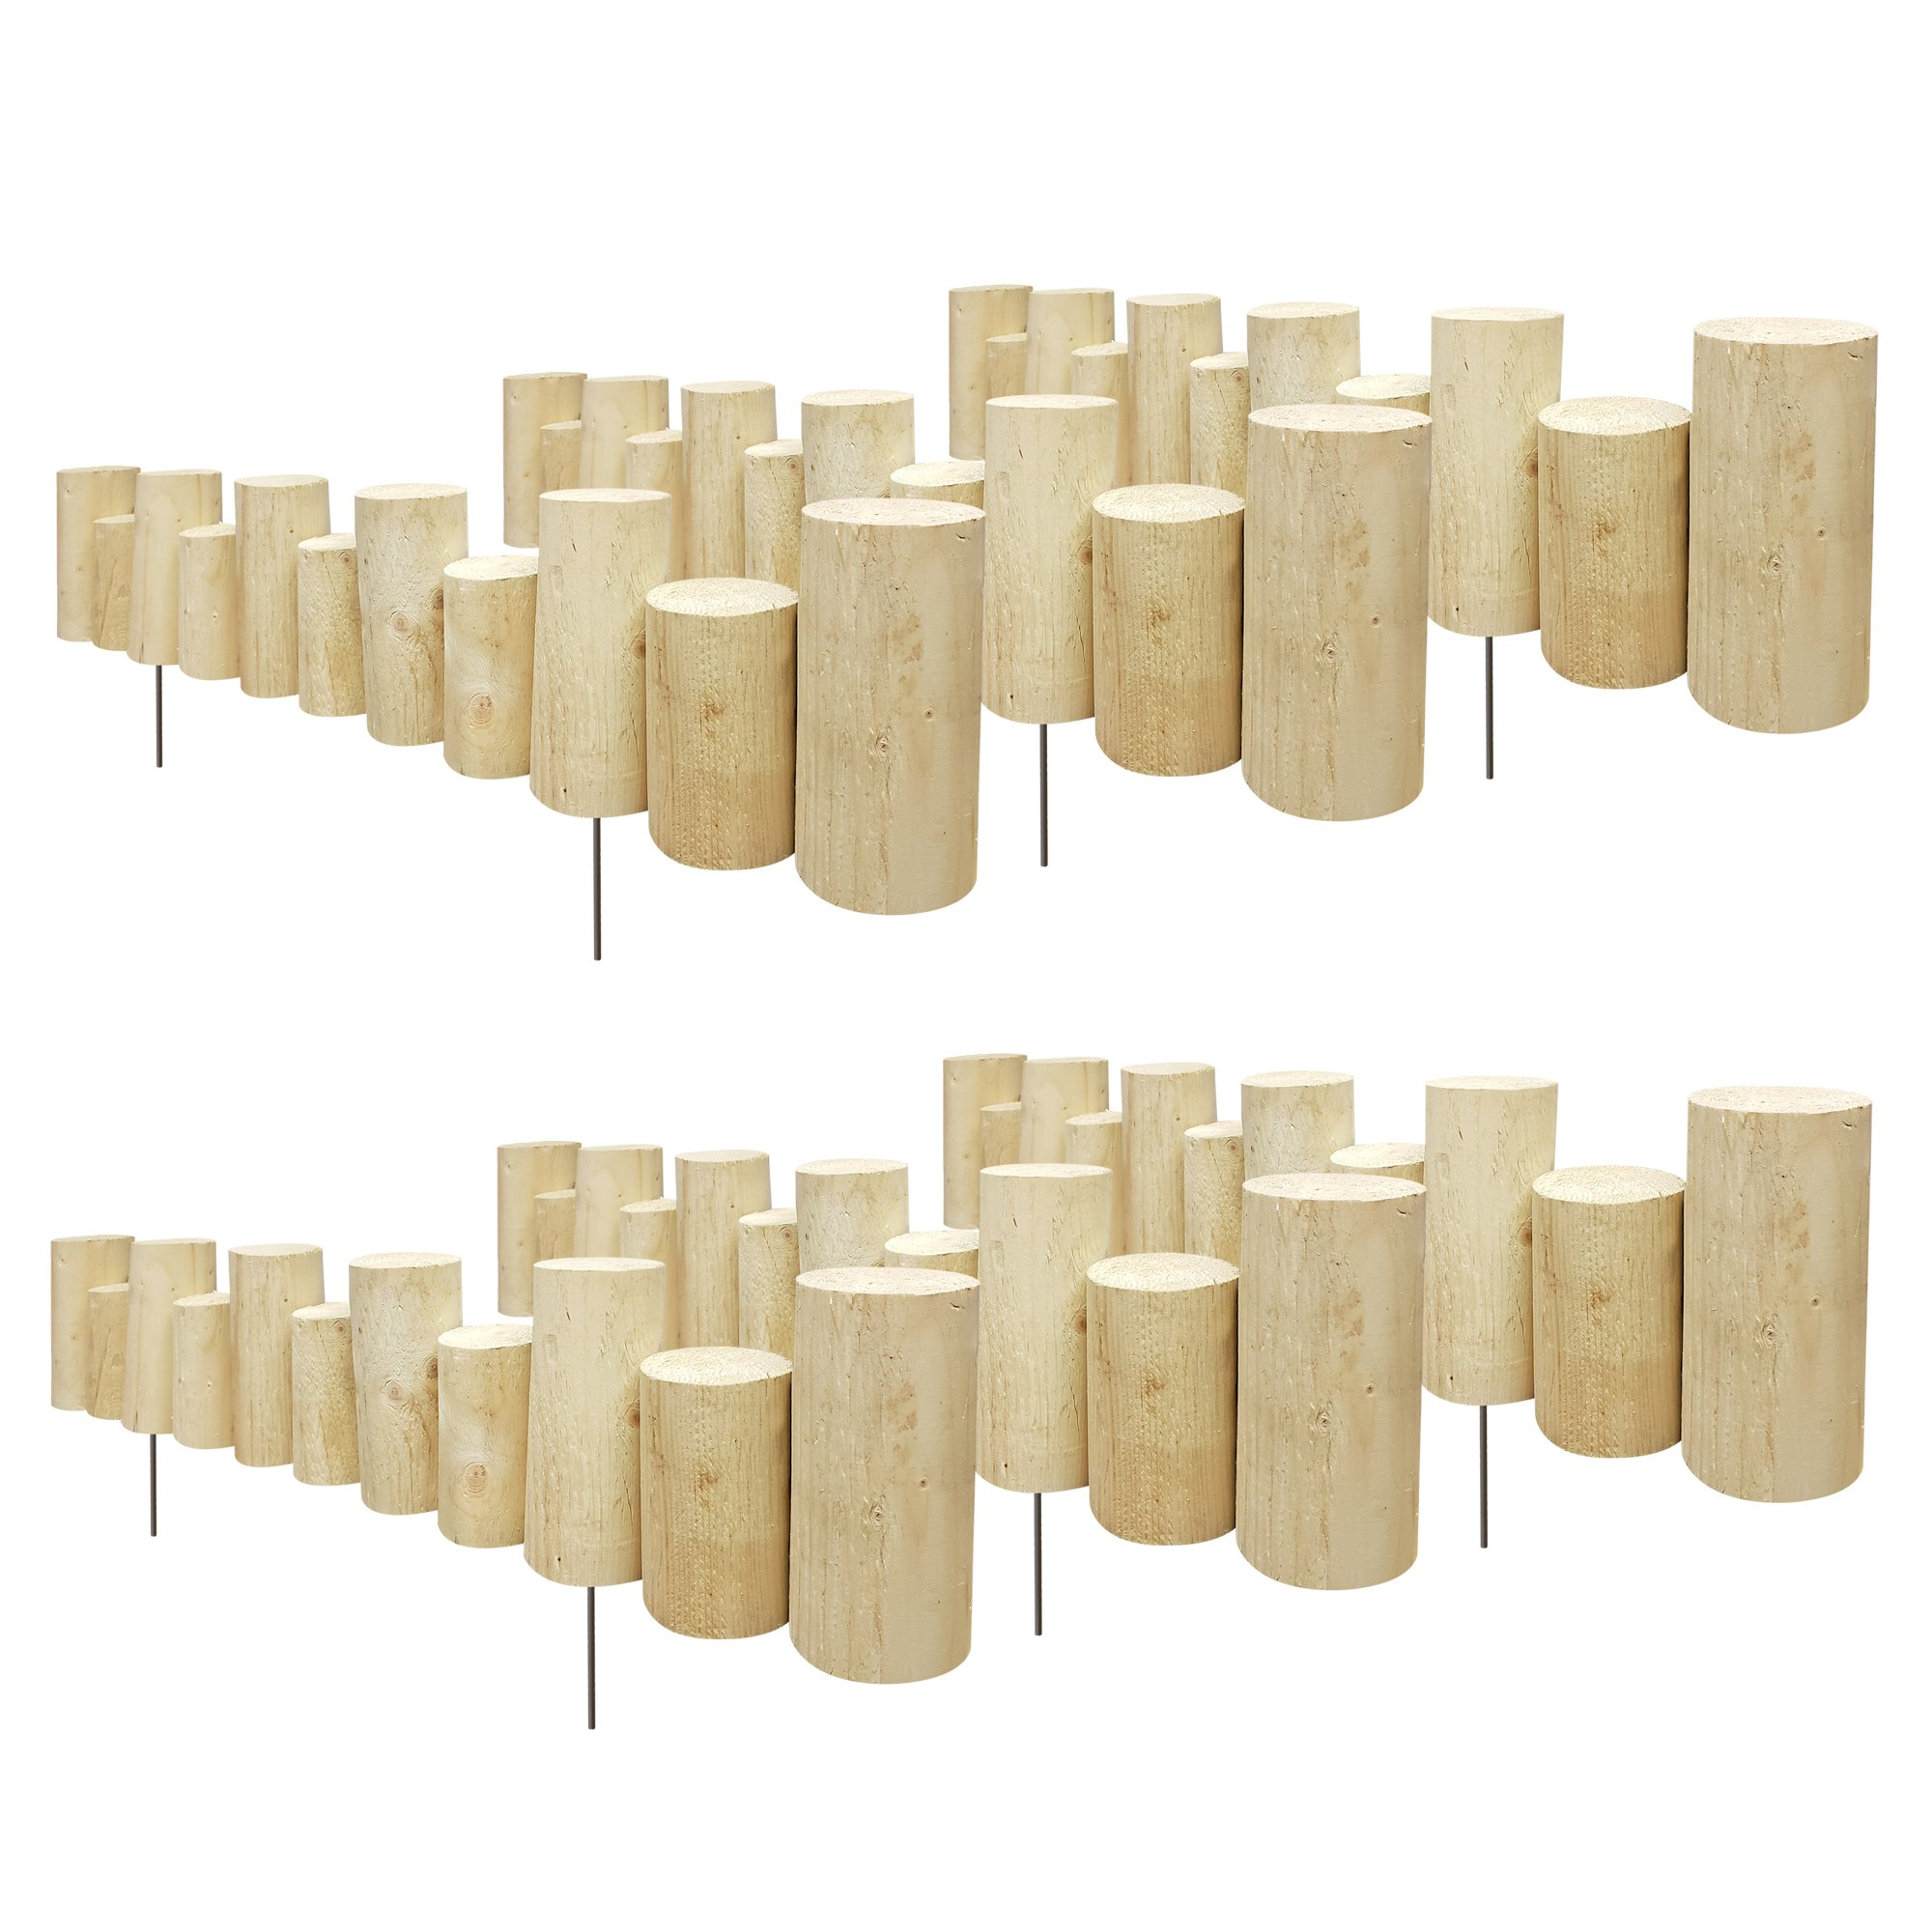 Greenes Fence Pressure Treated Staggered Full Log Edging, 3'' W x 3' L x 5-7 H (6-Pack)